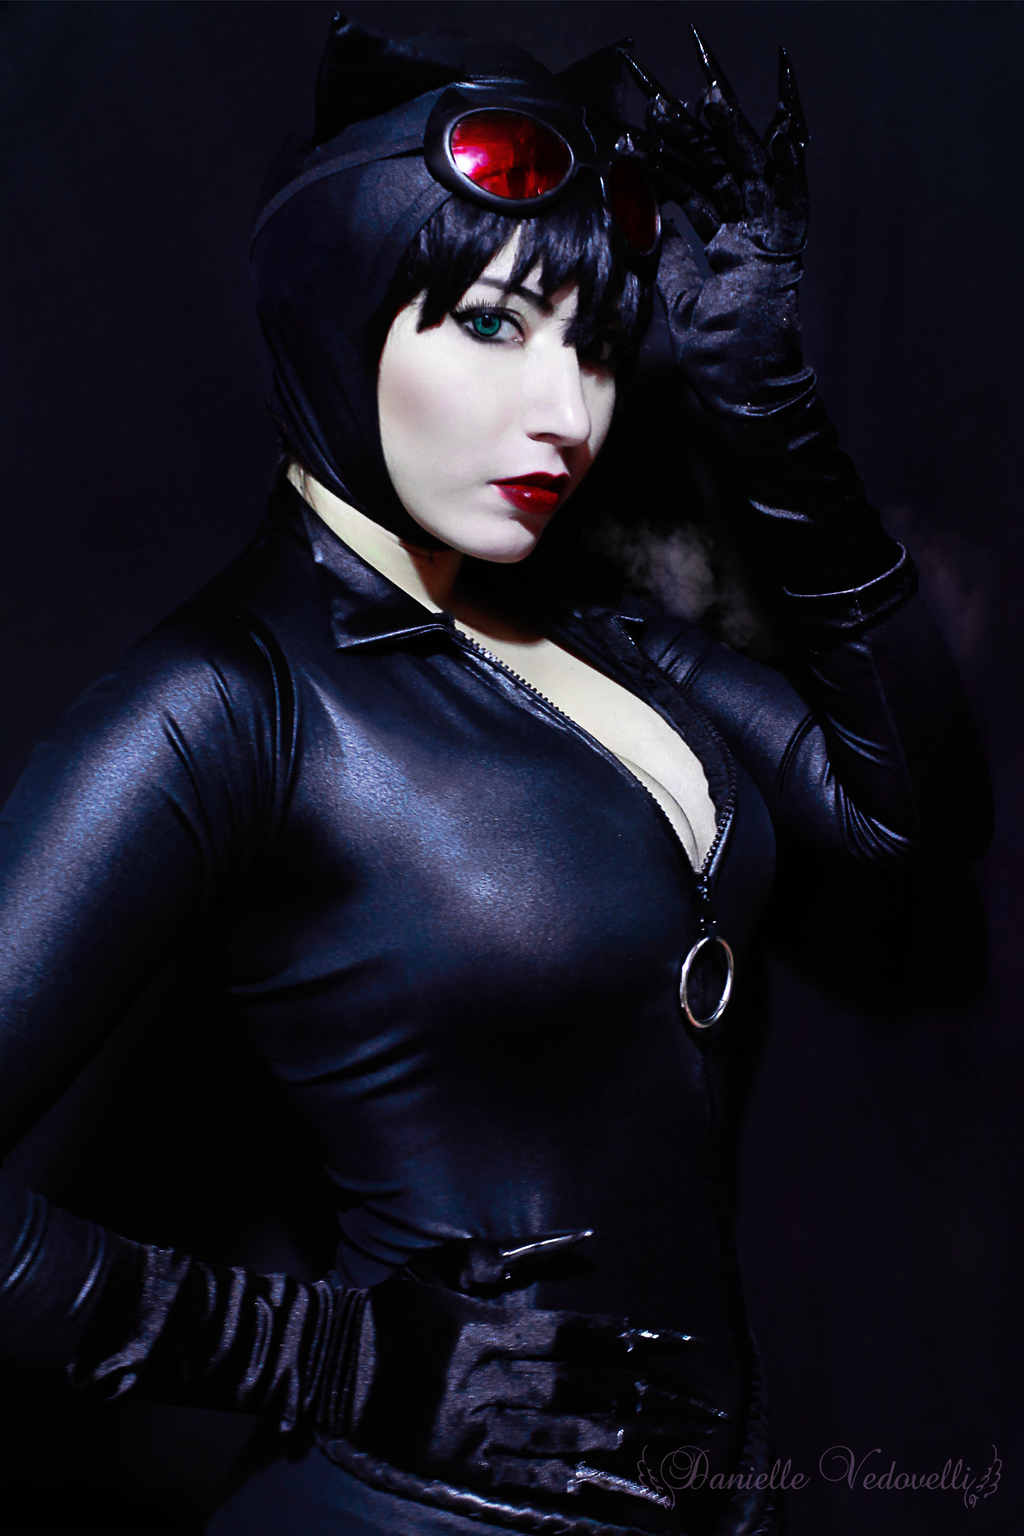 Danielle Vedovelli  is Catwoman — Photo byEve, The Bard